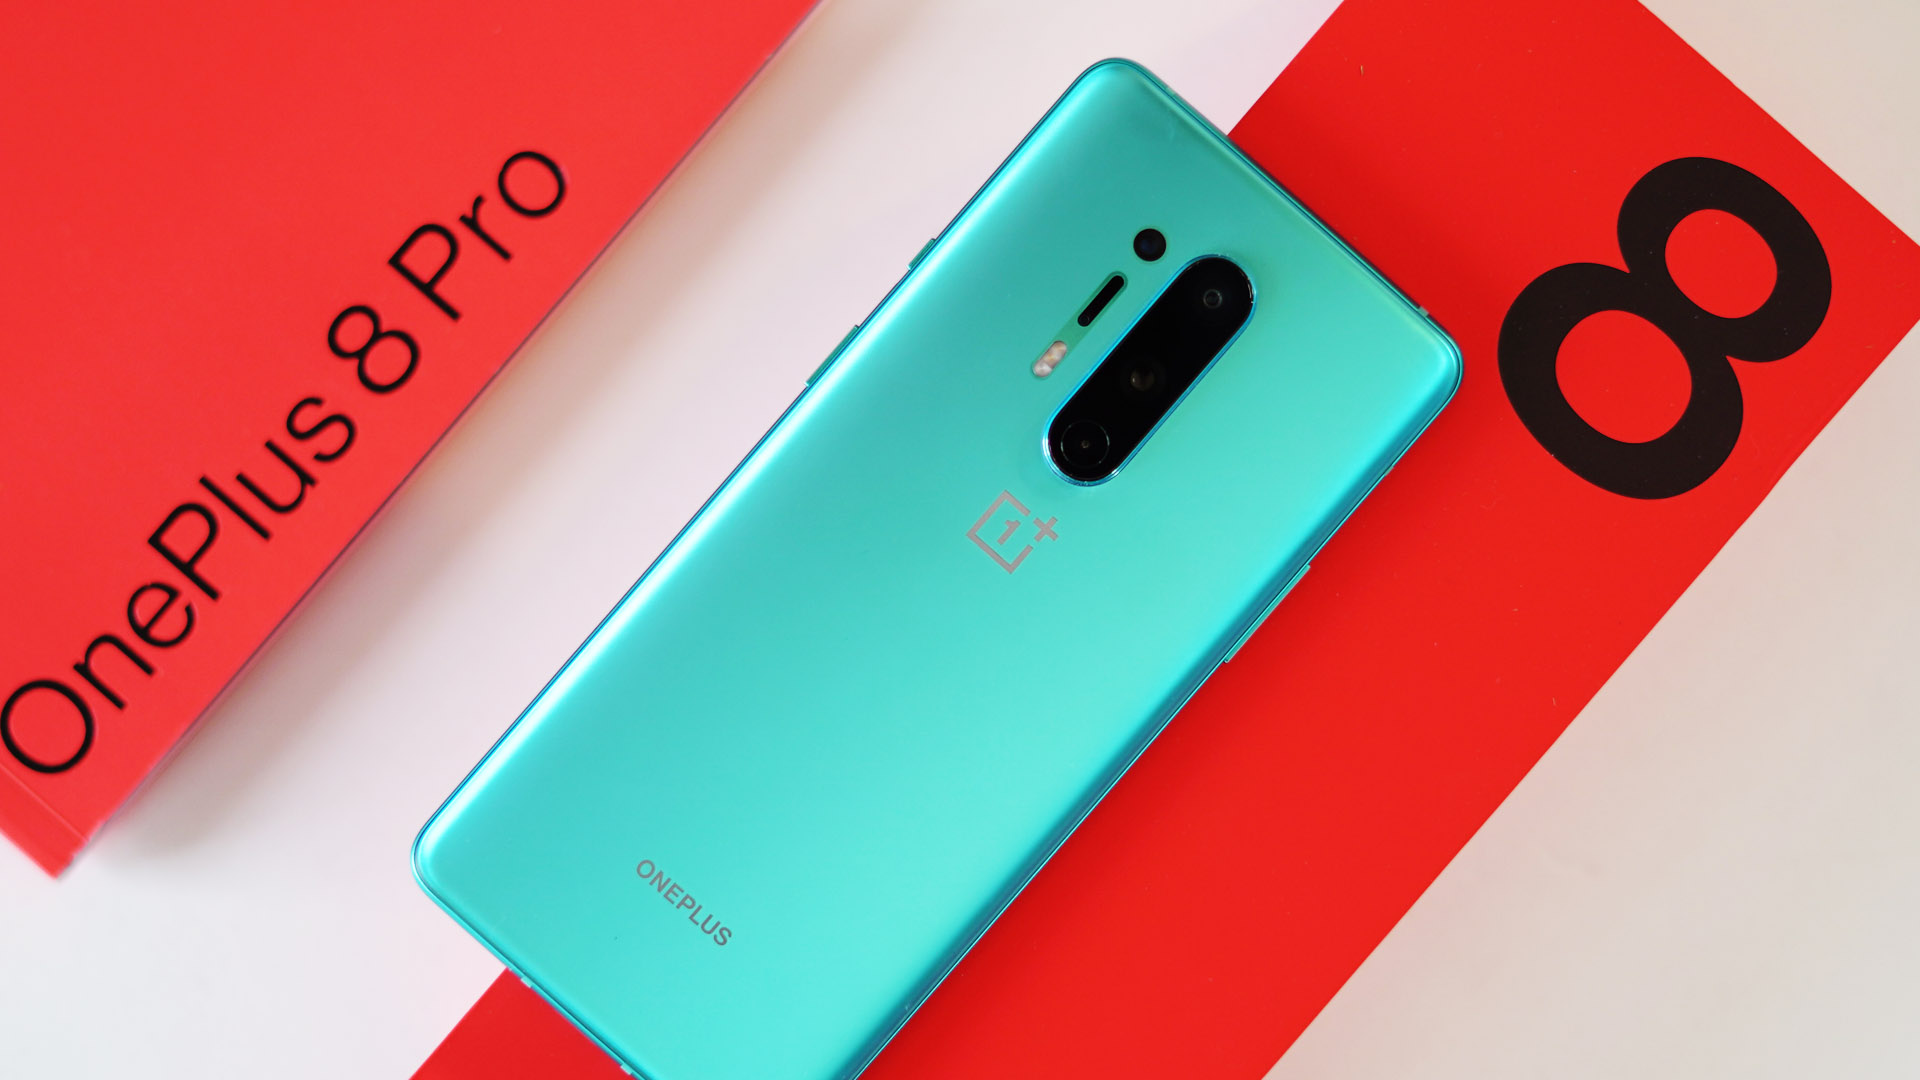 OnePlus 8 Pro Mobile Review